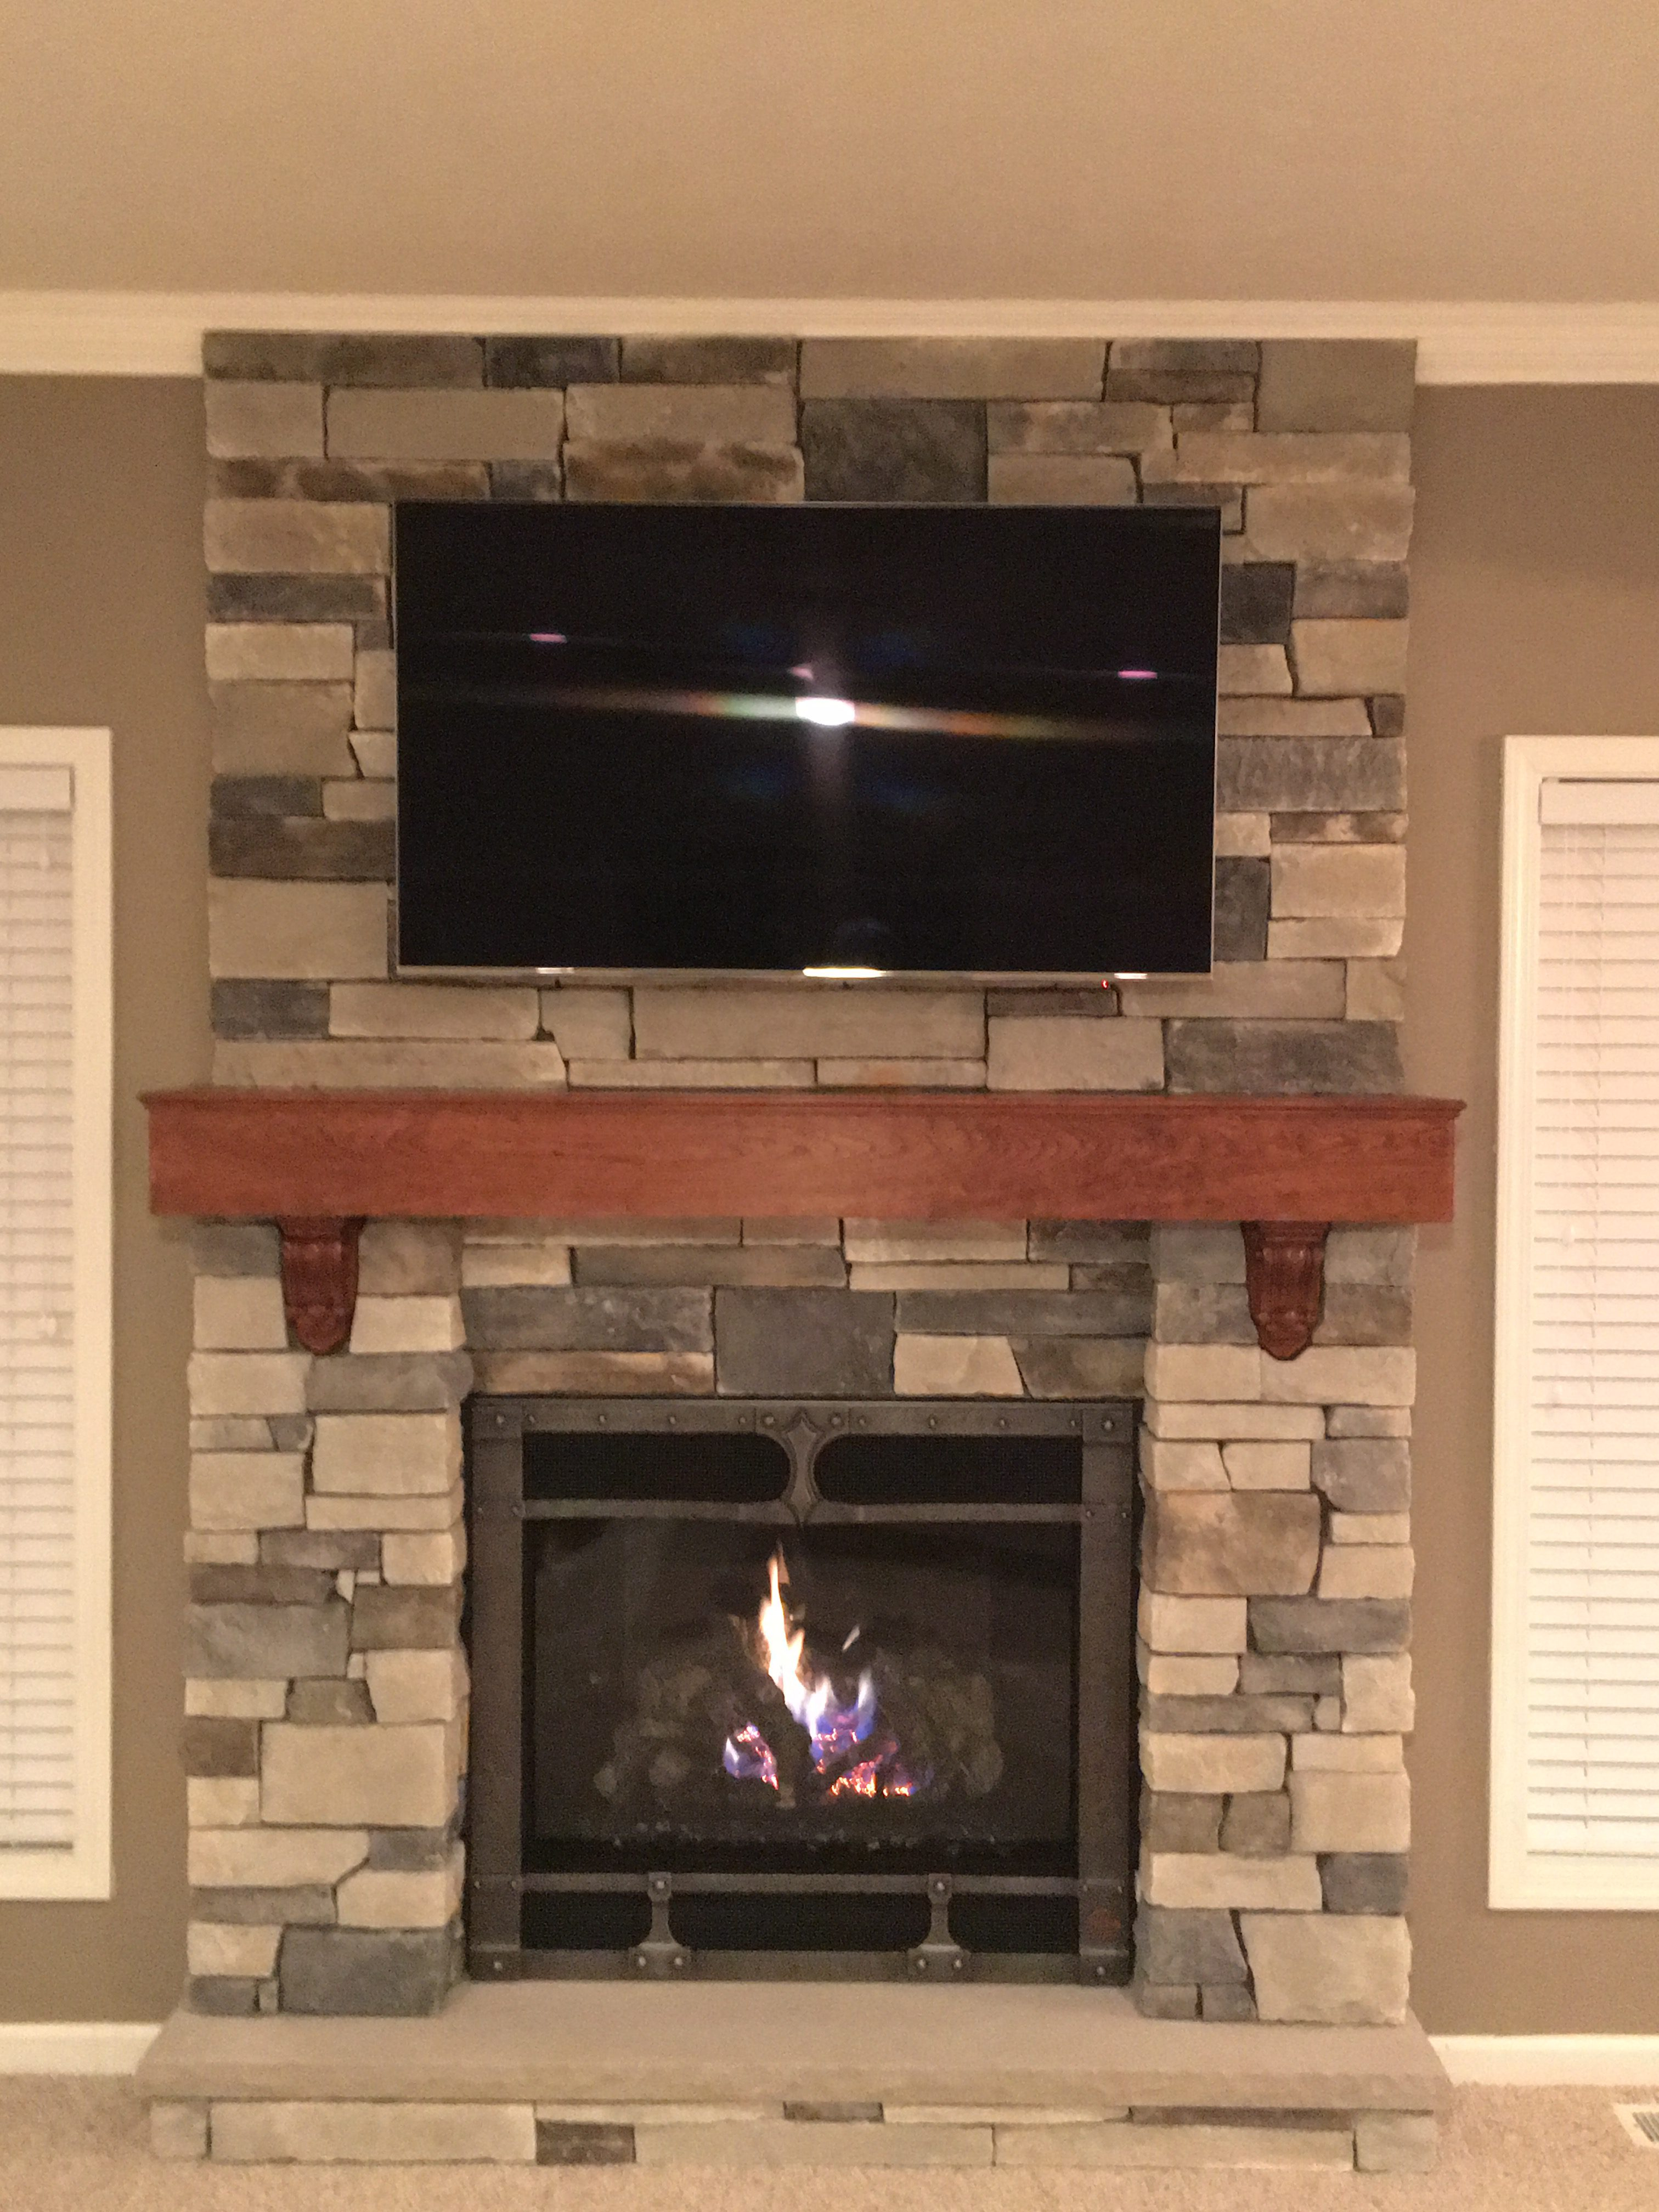 Image of a traditional 864TRV gas fireplace by Fireplace X featuring rustic stonework and mantle.